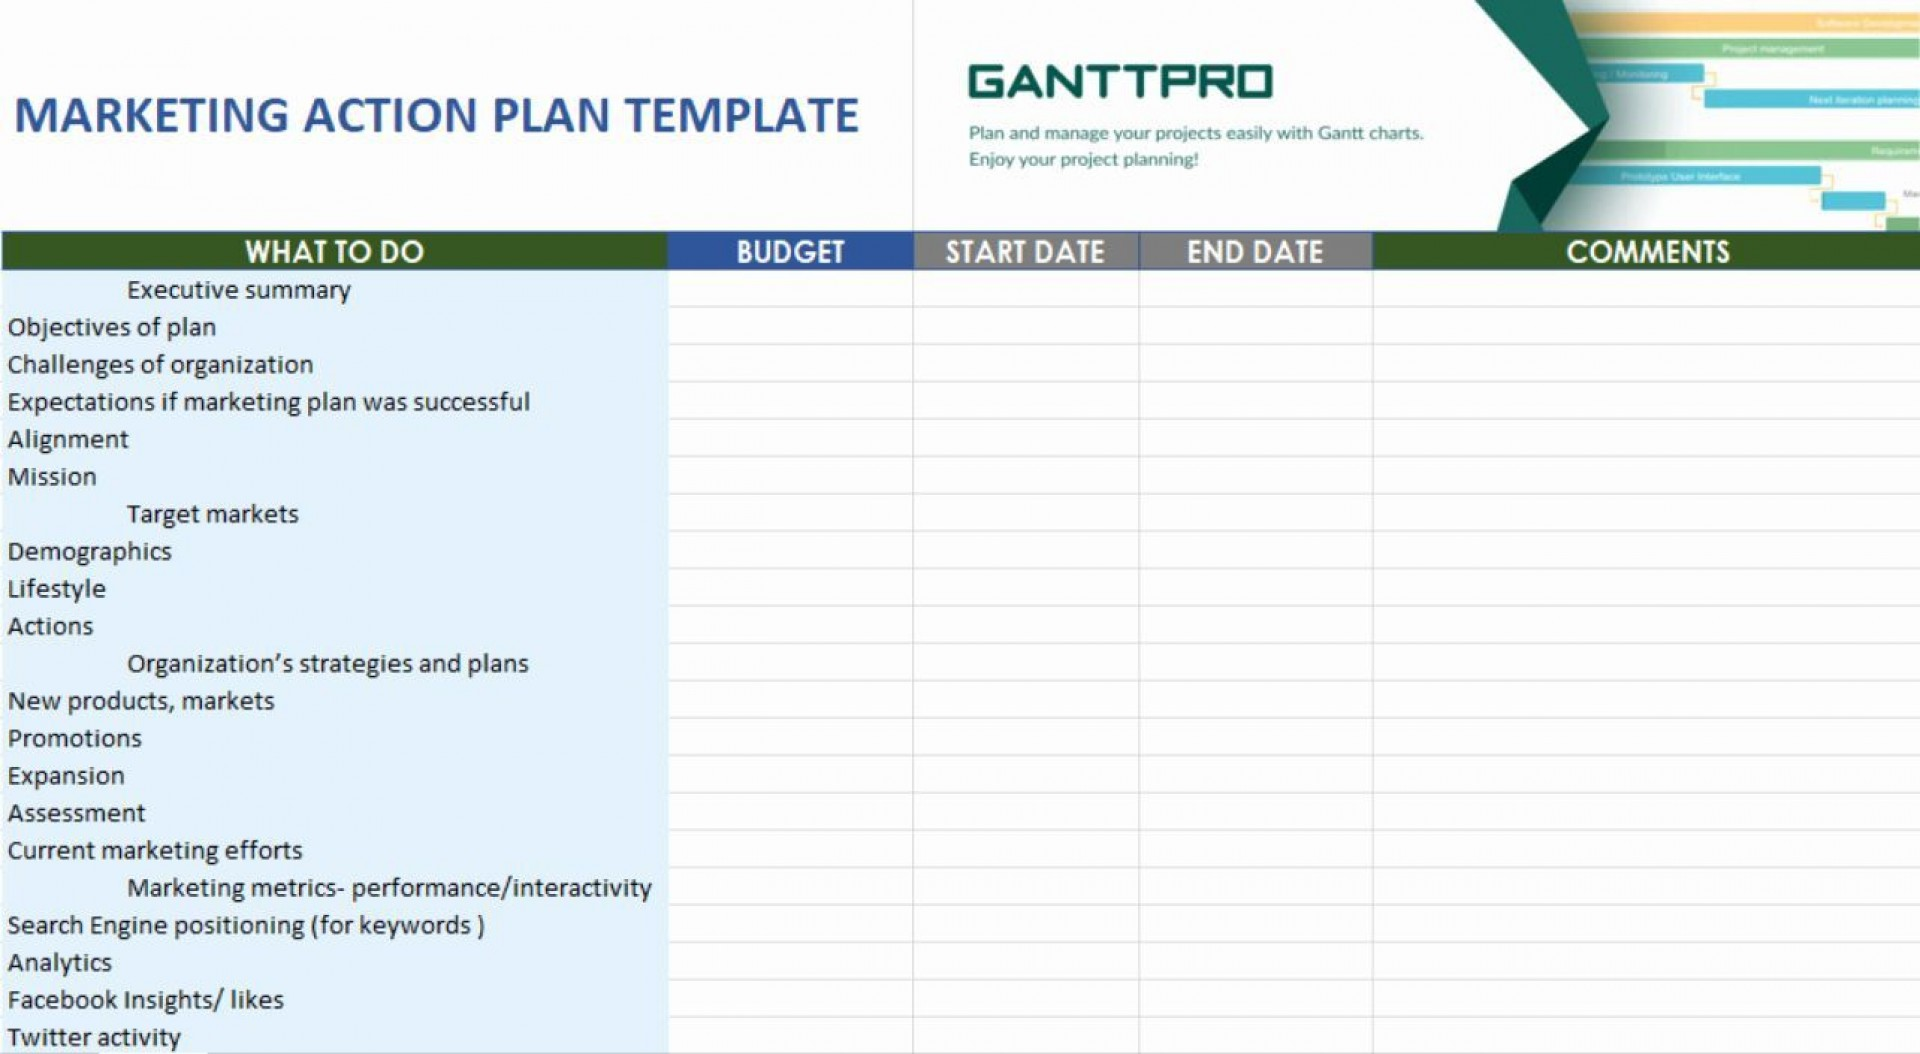 005 Fearsome Action Plan Template Excel Concept 1920